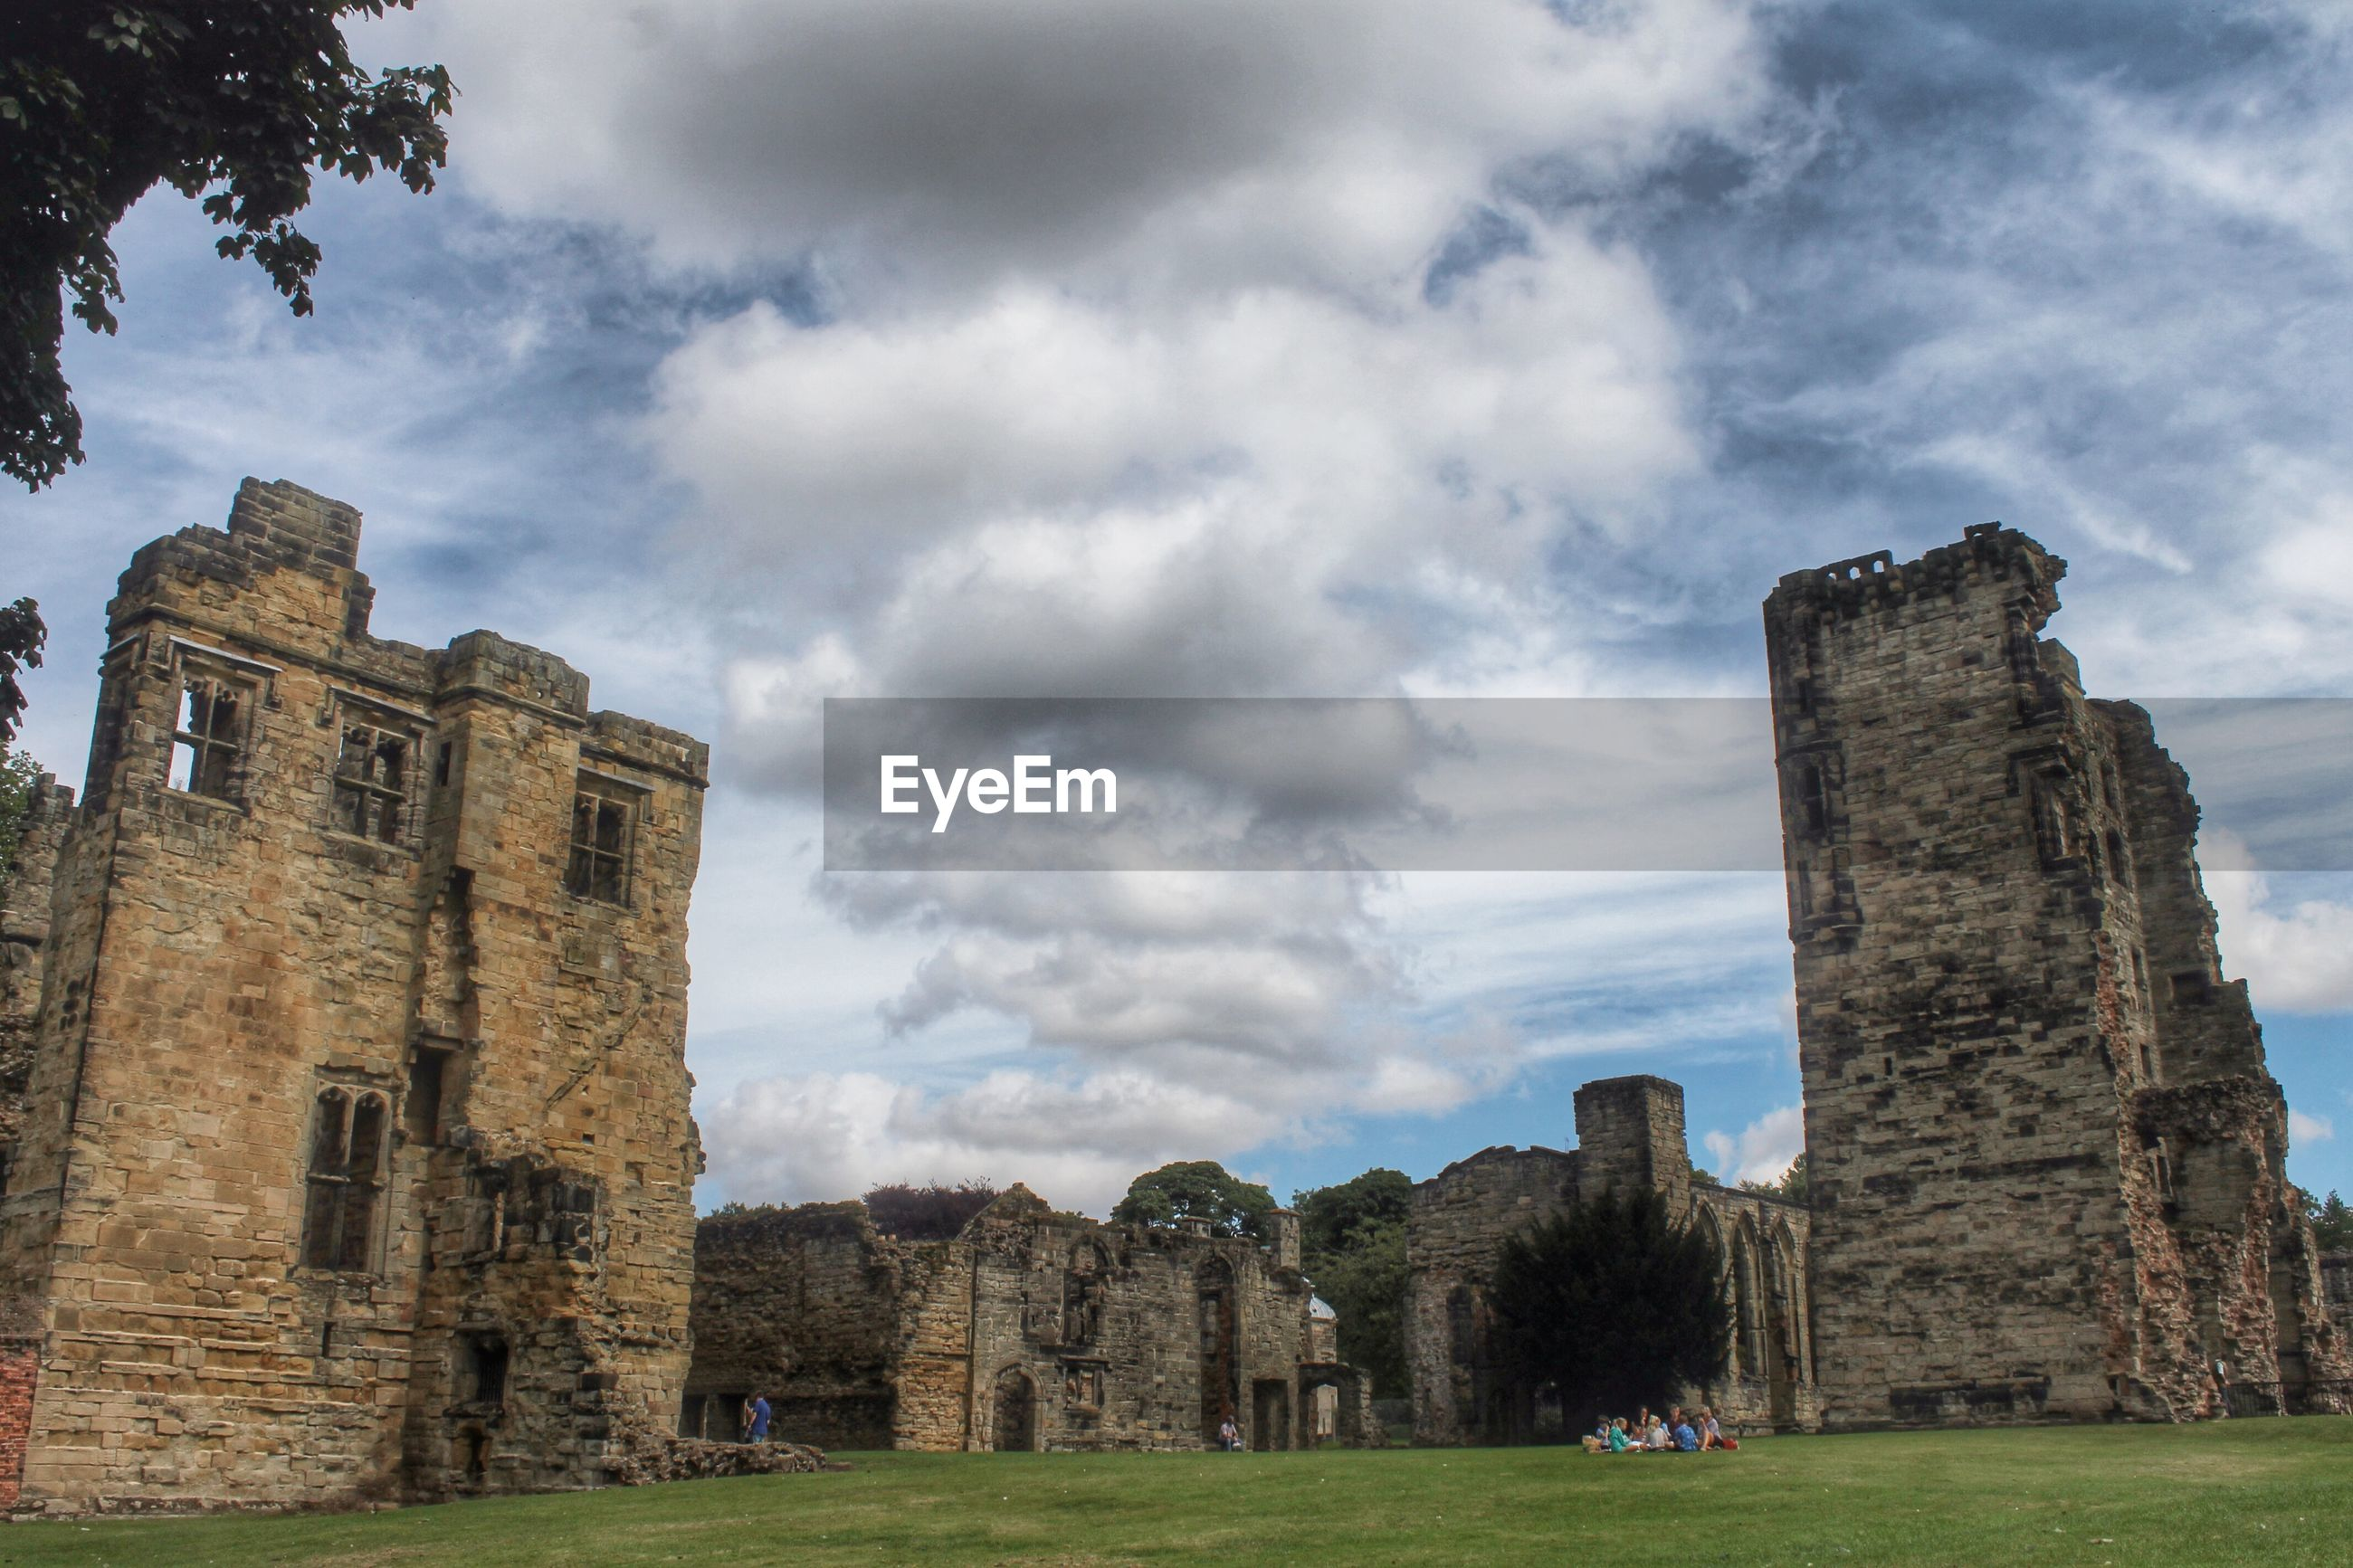 architecture, built structure, building exterior, old ruin, history, sky, old, ancient, the past, cloud - sky, grass, ruined, damaged, abandoned, weathered, castle, run-down, stone wall, cloudy, ancient civilization